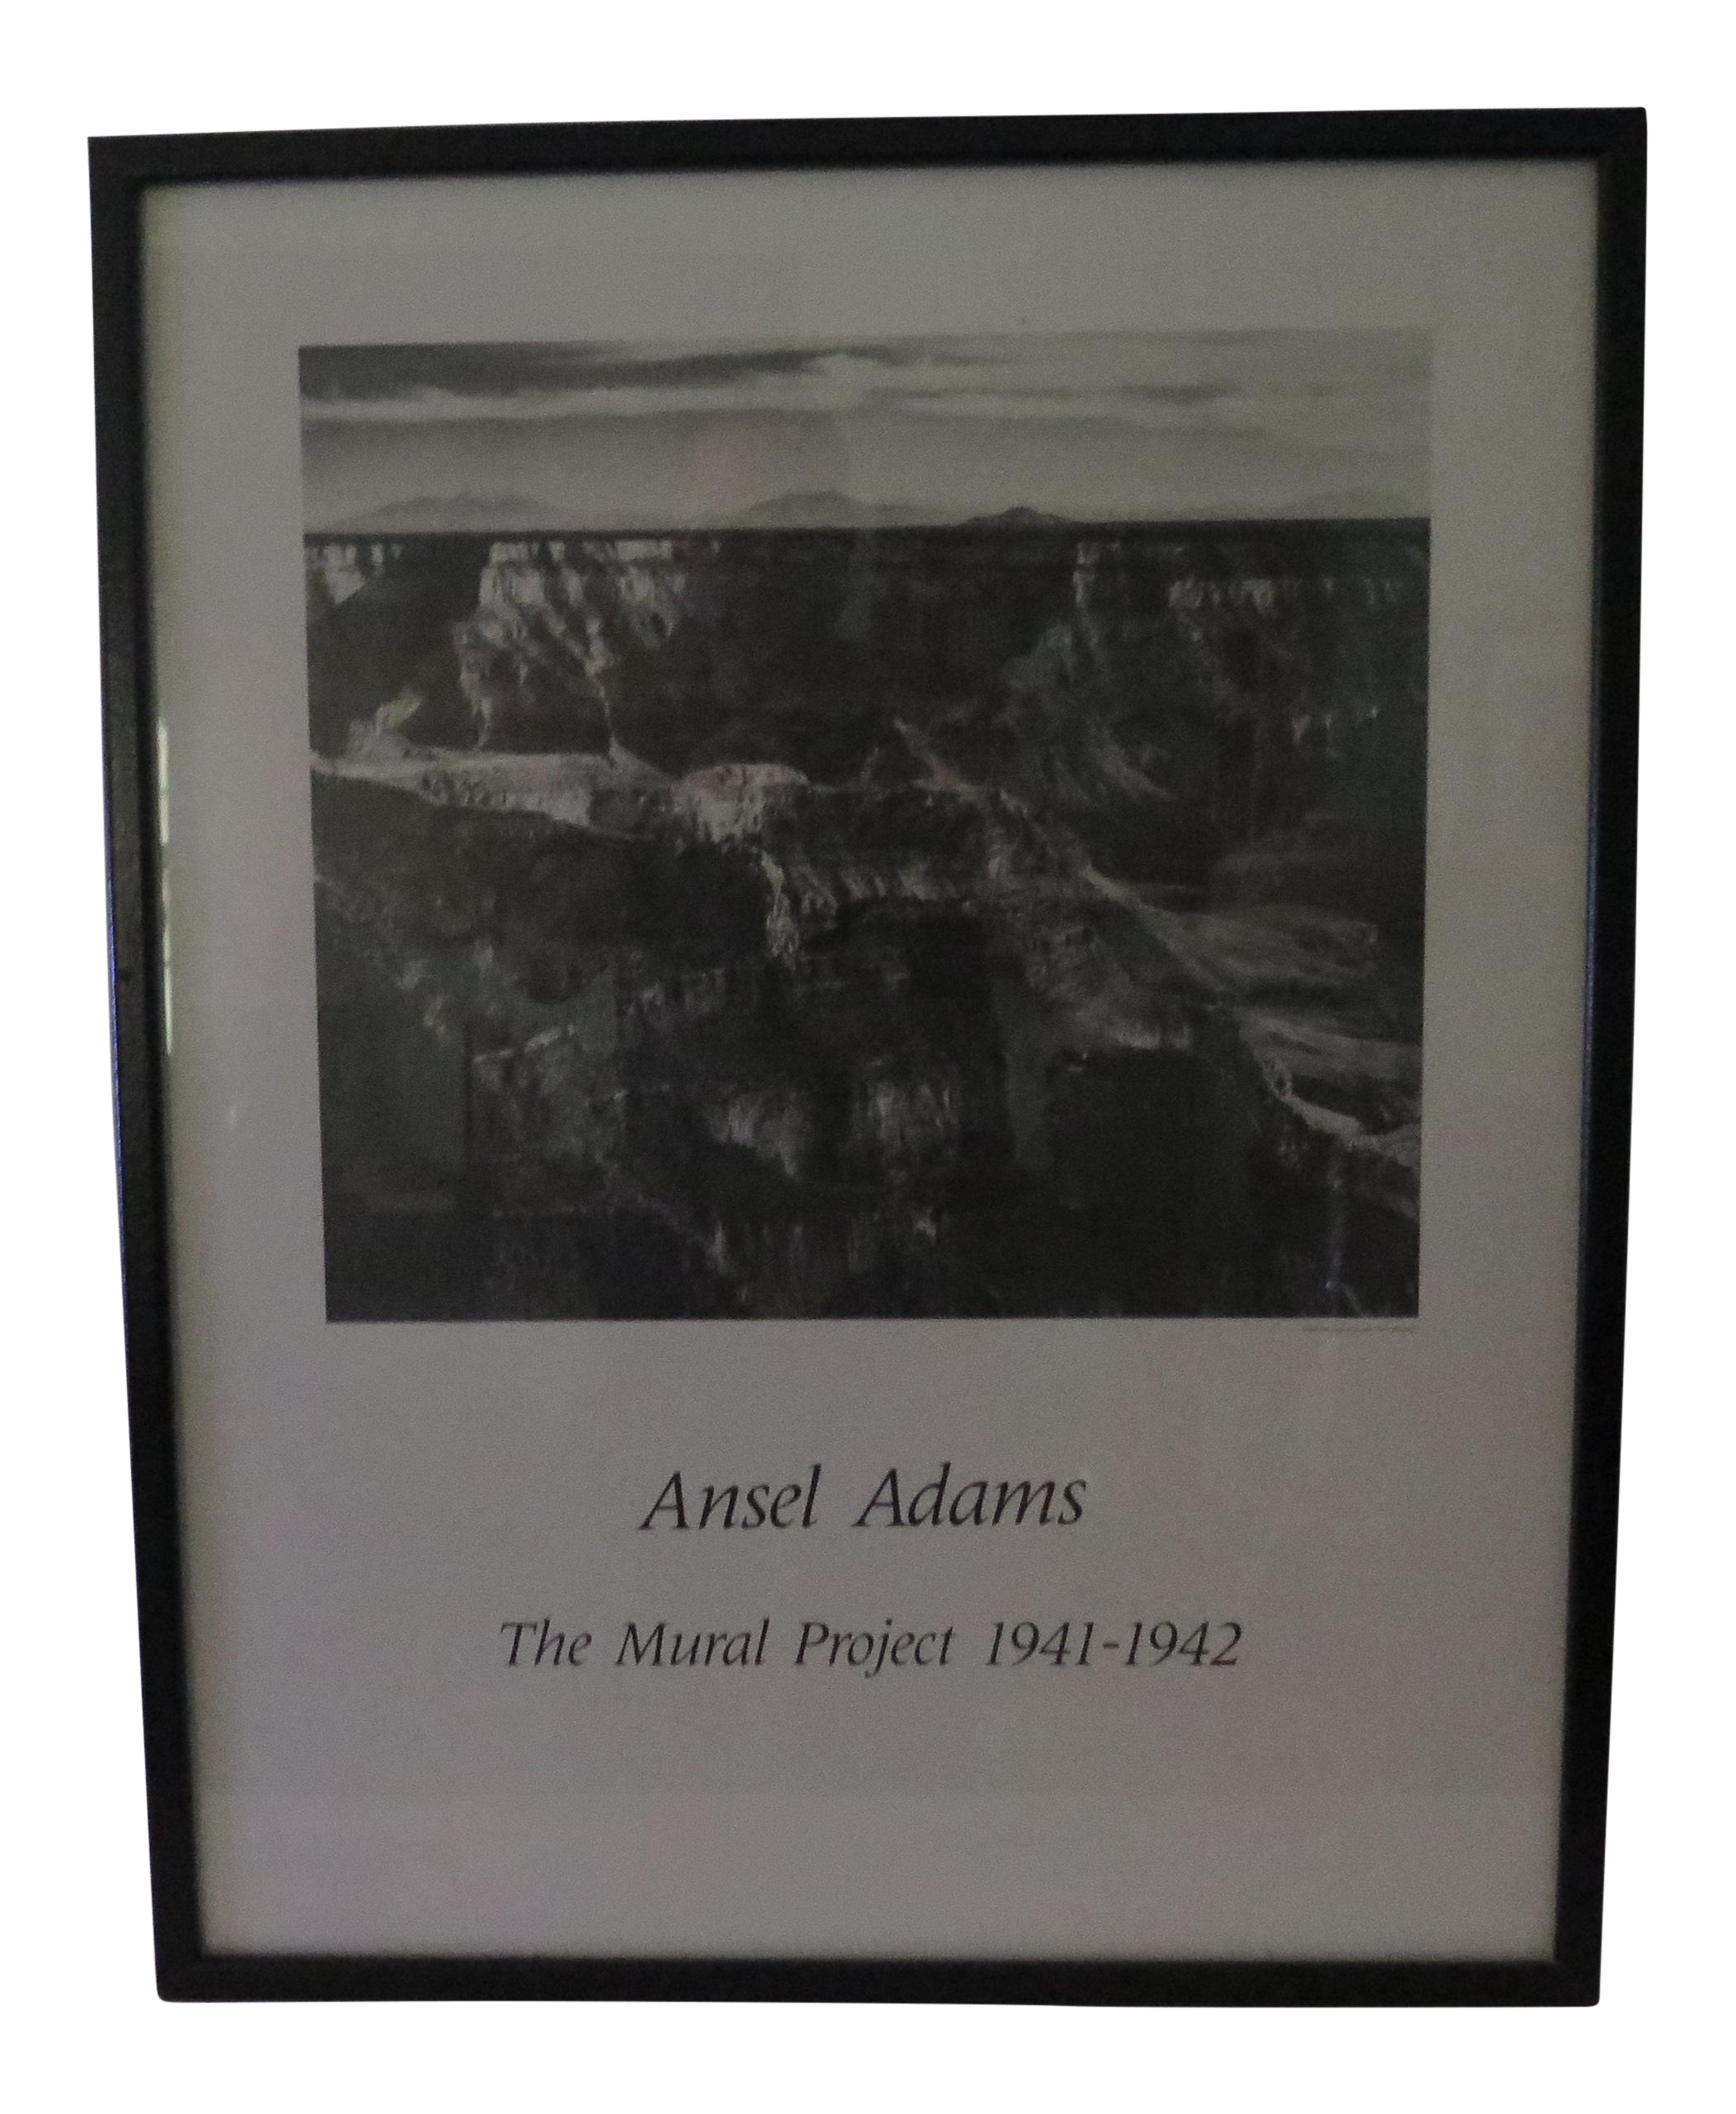 Vintage ansel adams mural project poster chairish for Ansel adams the mural project prints